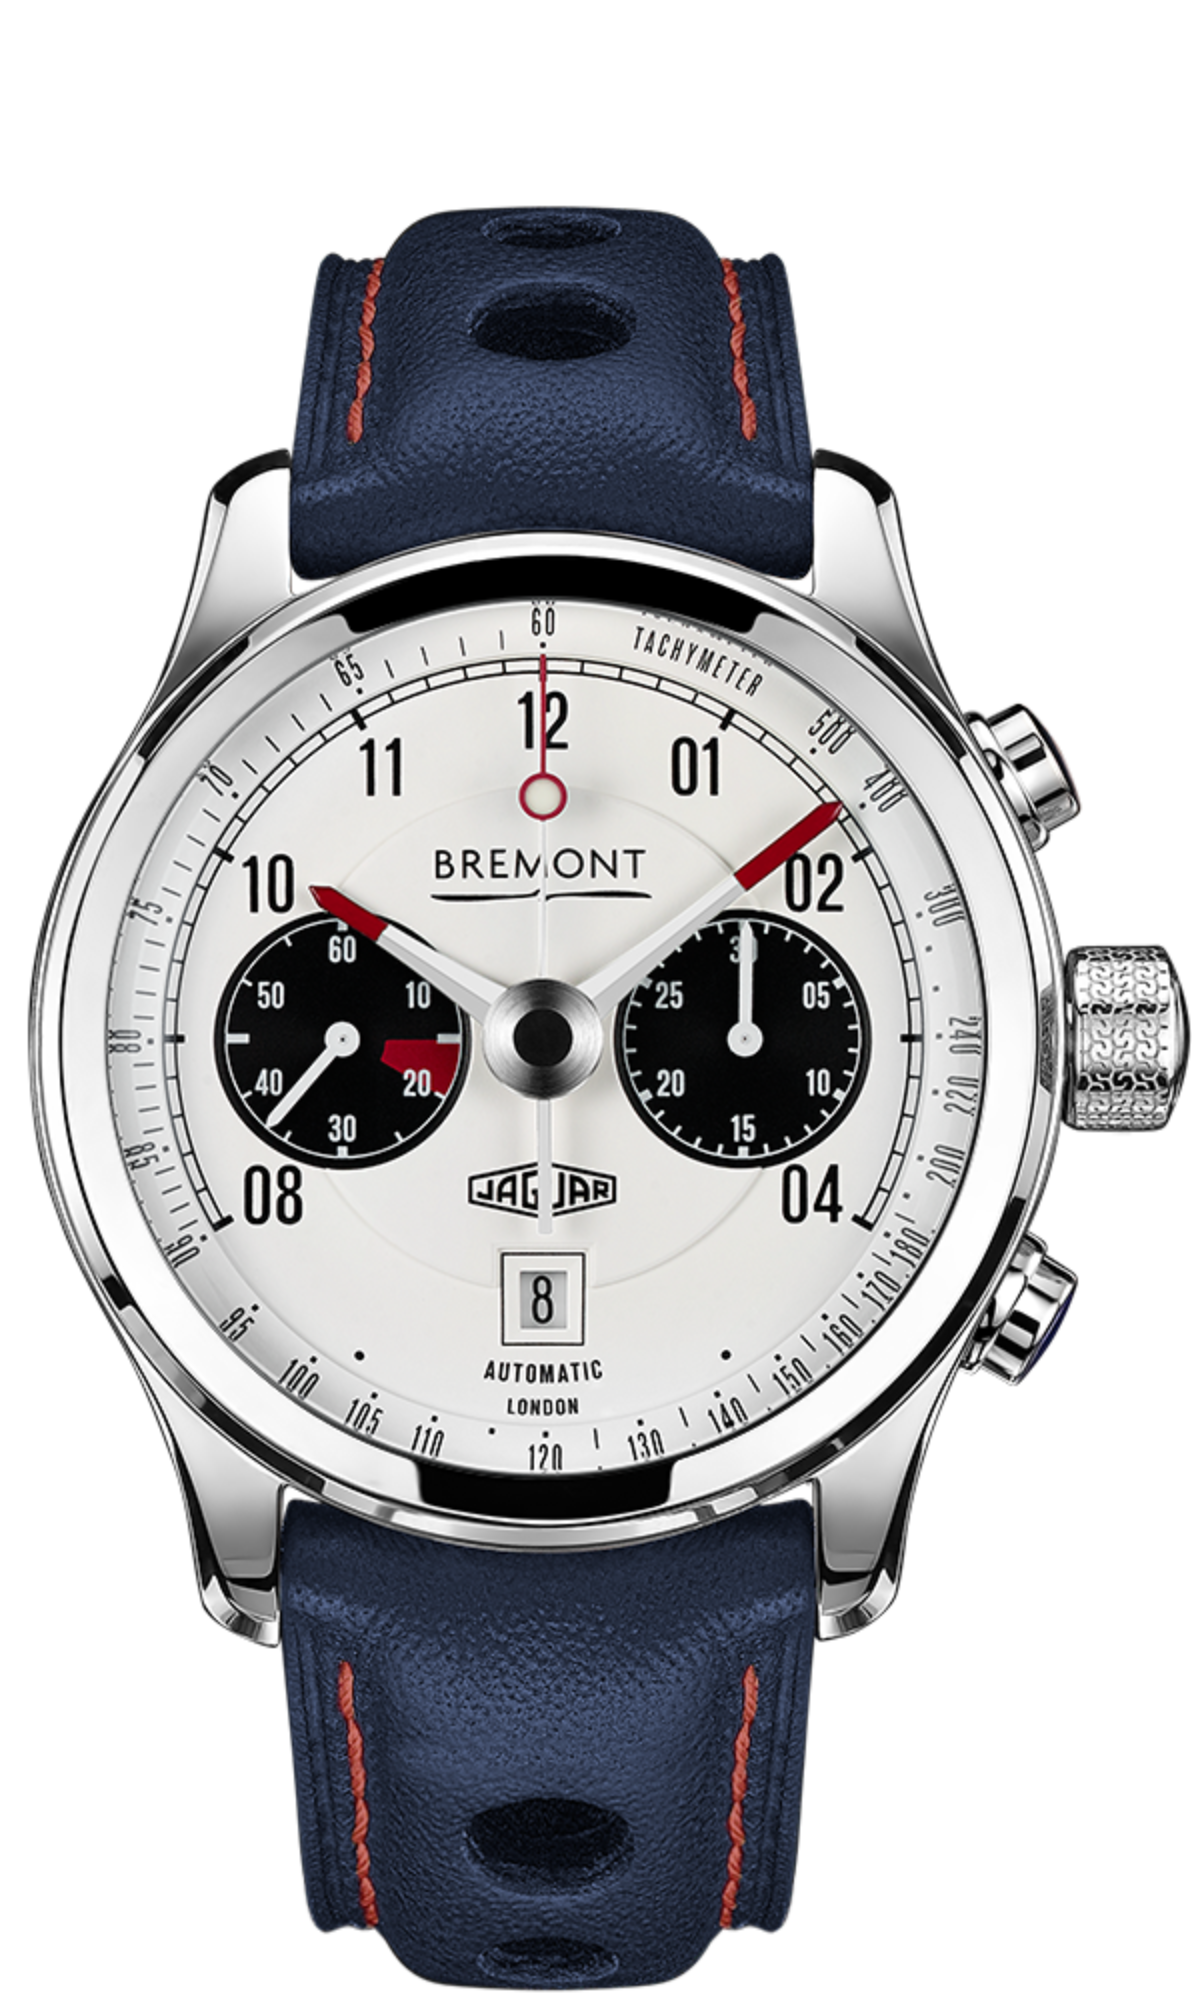 Bremont MKII Jaguar Chronograph Watch, Racing Watches, Leather Strap, Automatic Watch